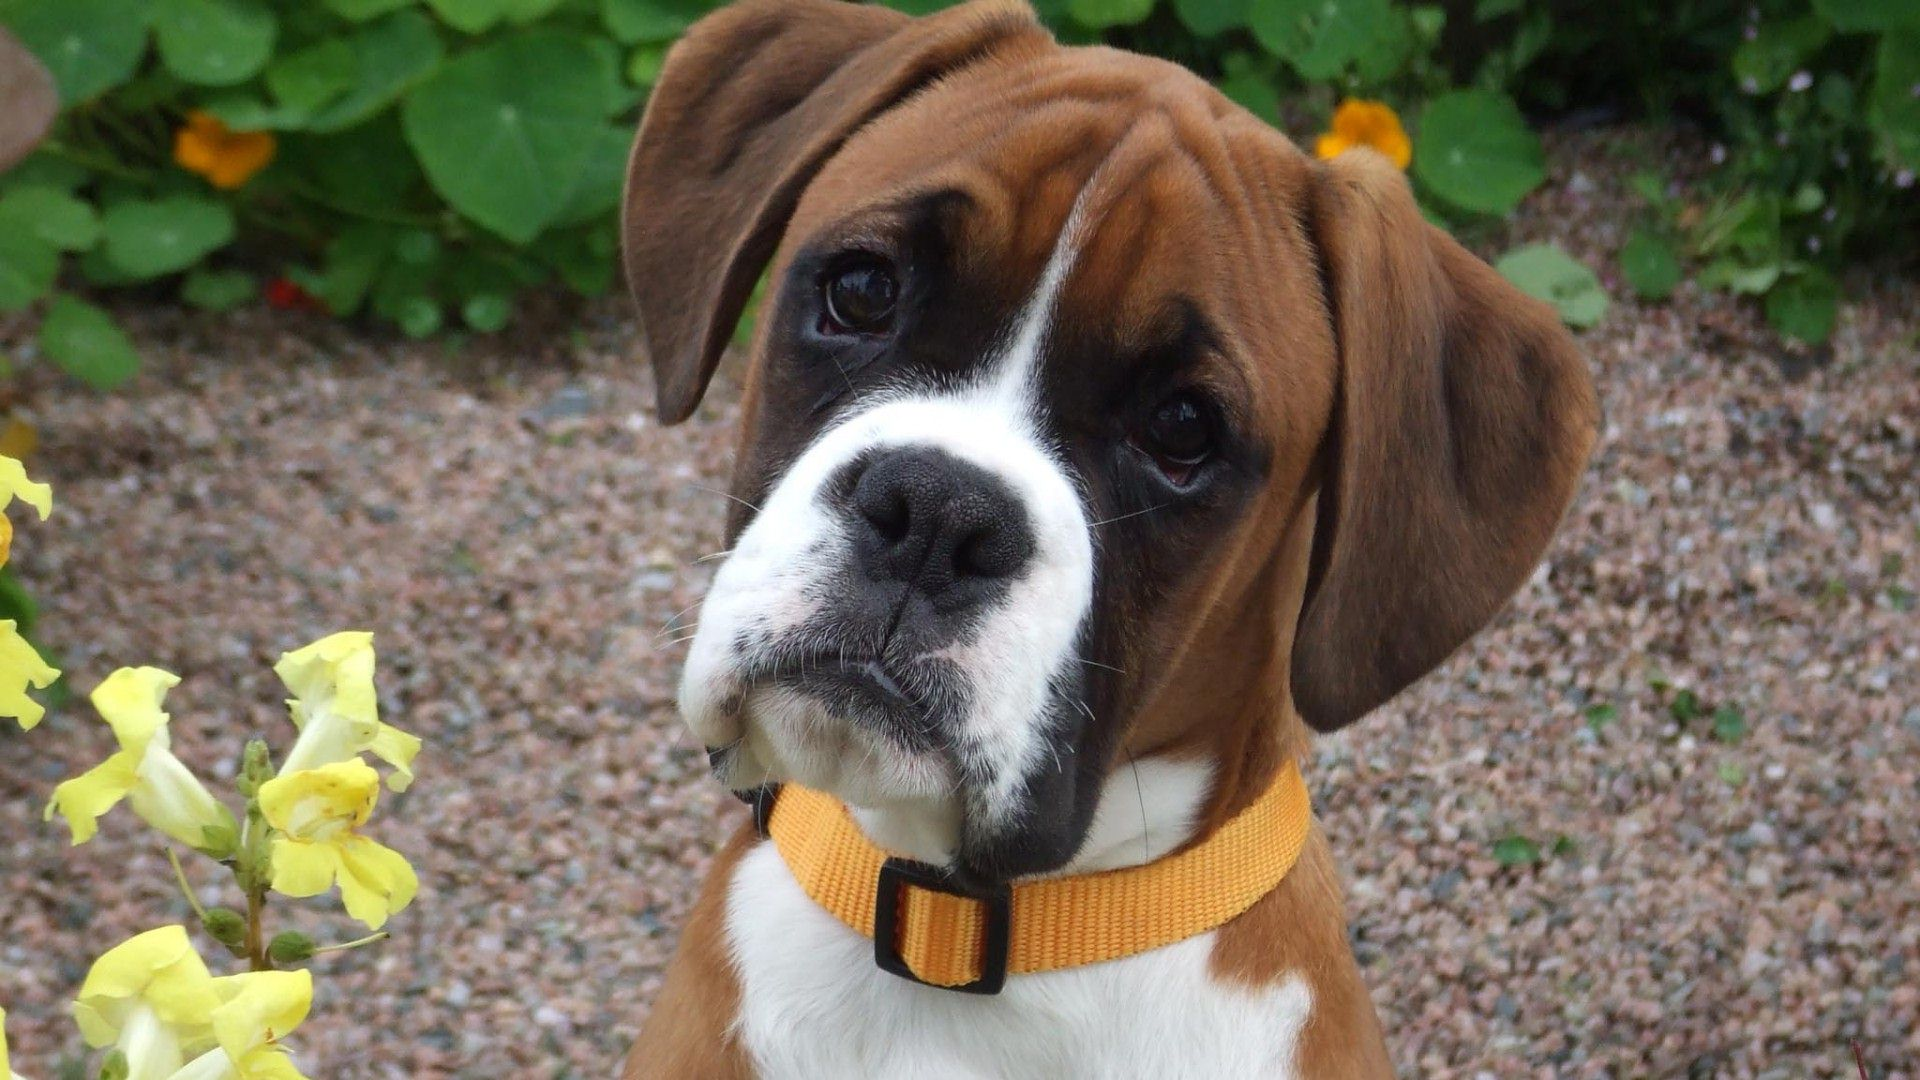 <b>Boxer Dog HD Wallpaper</b> - Android Apps on Google Play